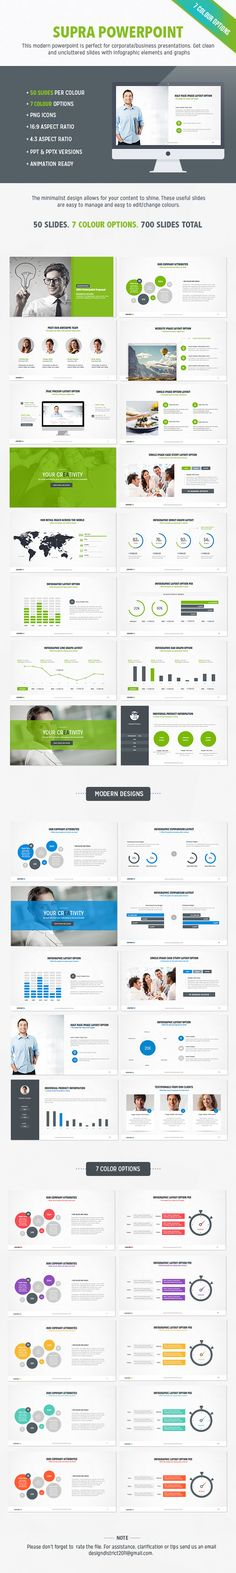 H Premium Source Of Powerpoint Slides  Creative Powerpoint